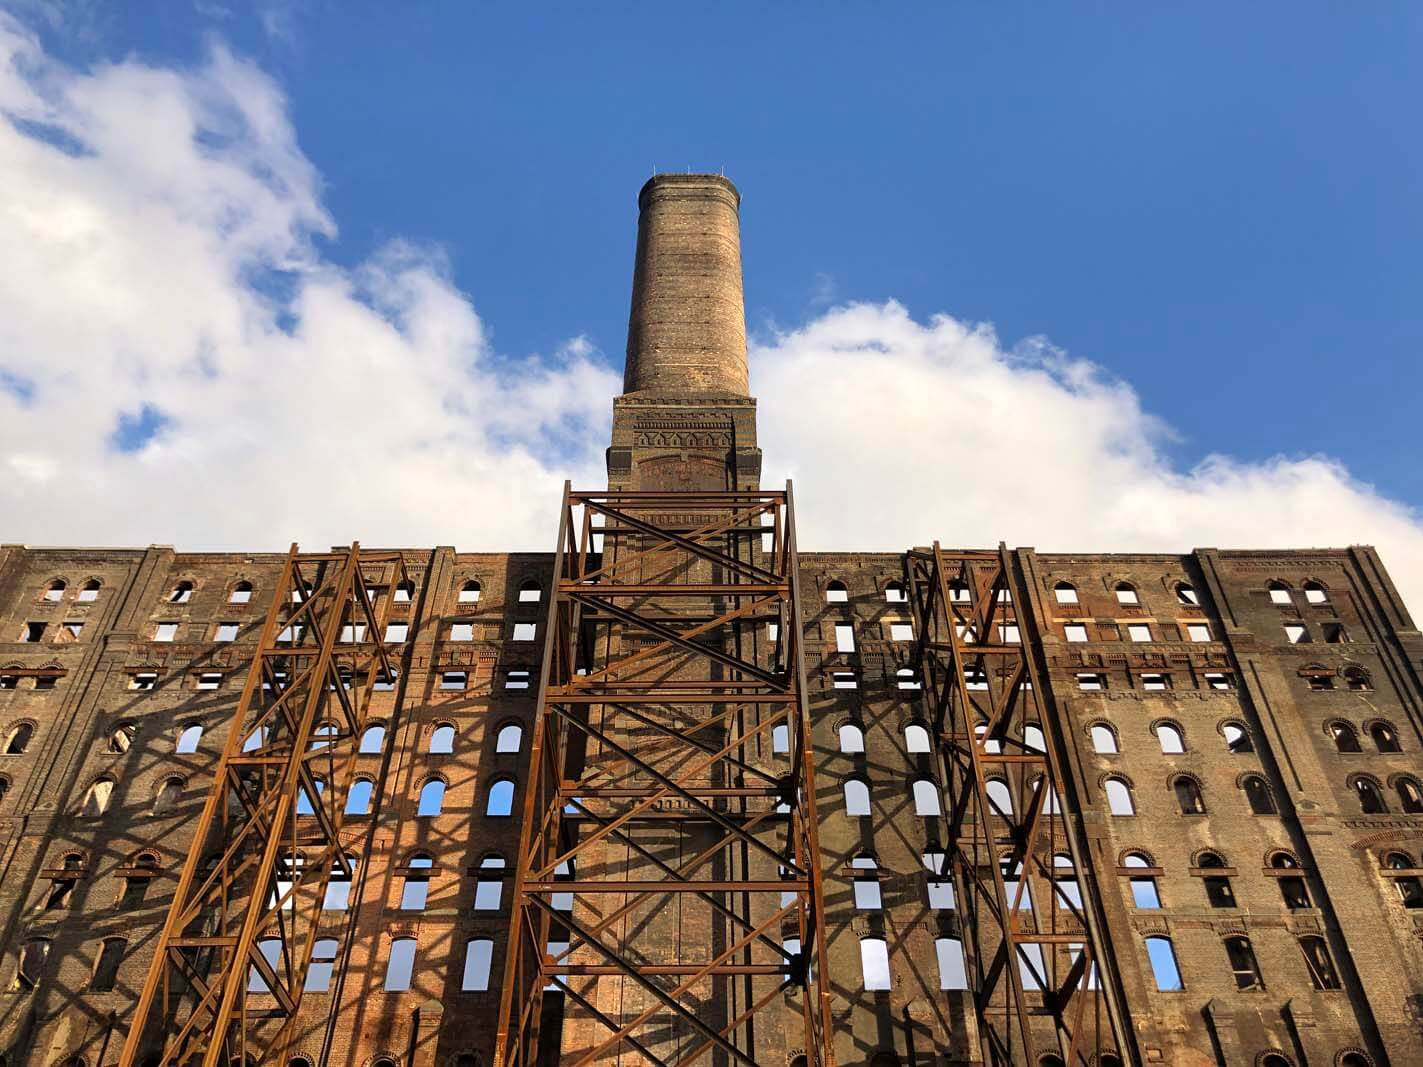 The Domino Sugar Factory at Domino Park in Williamsburg Brooklyn